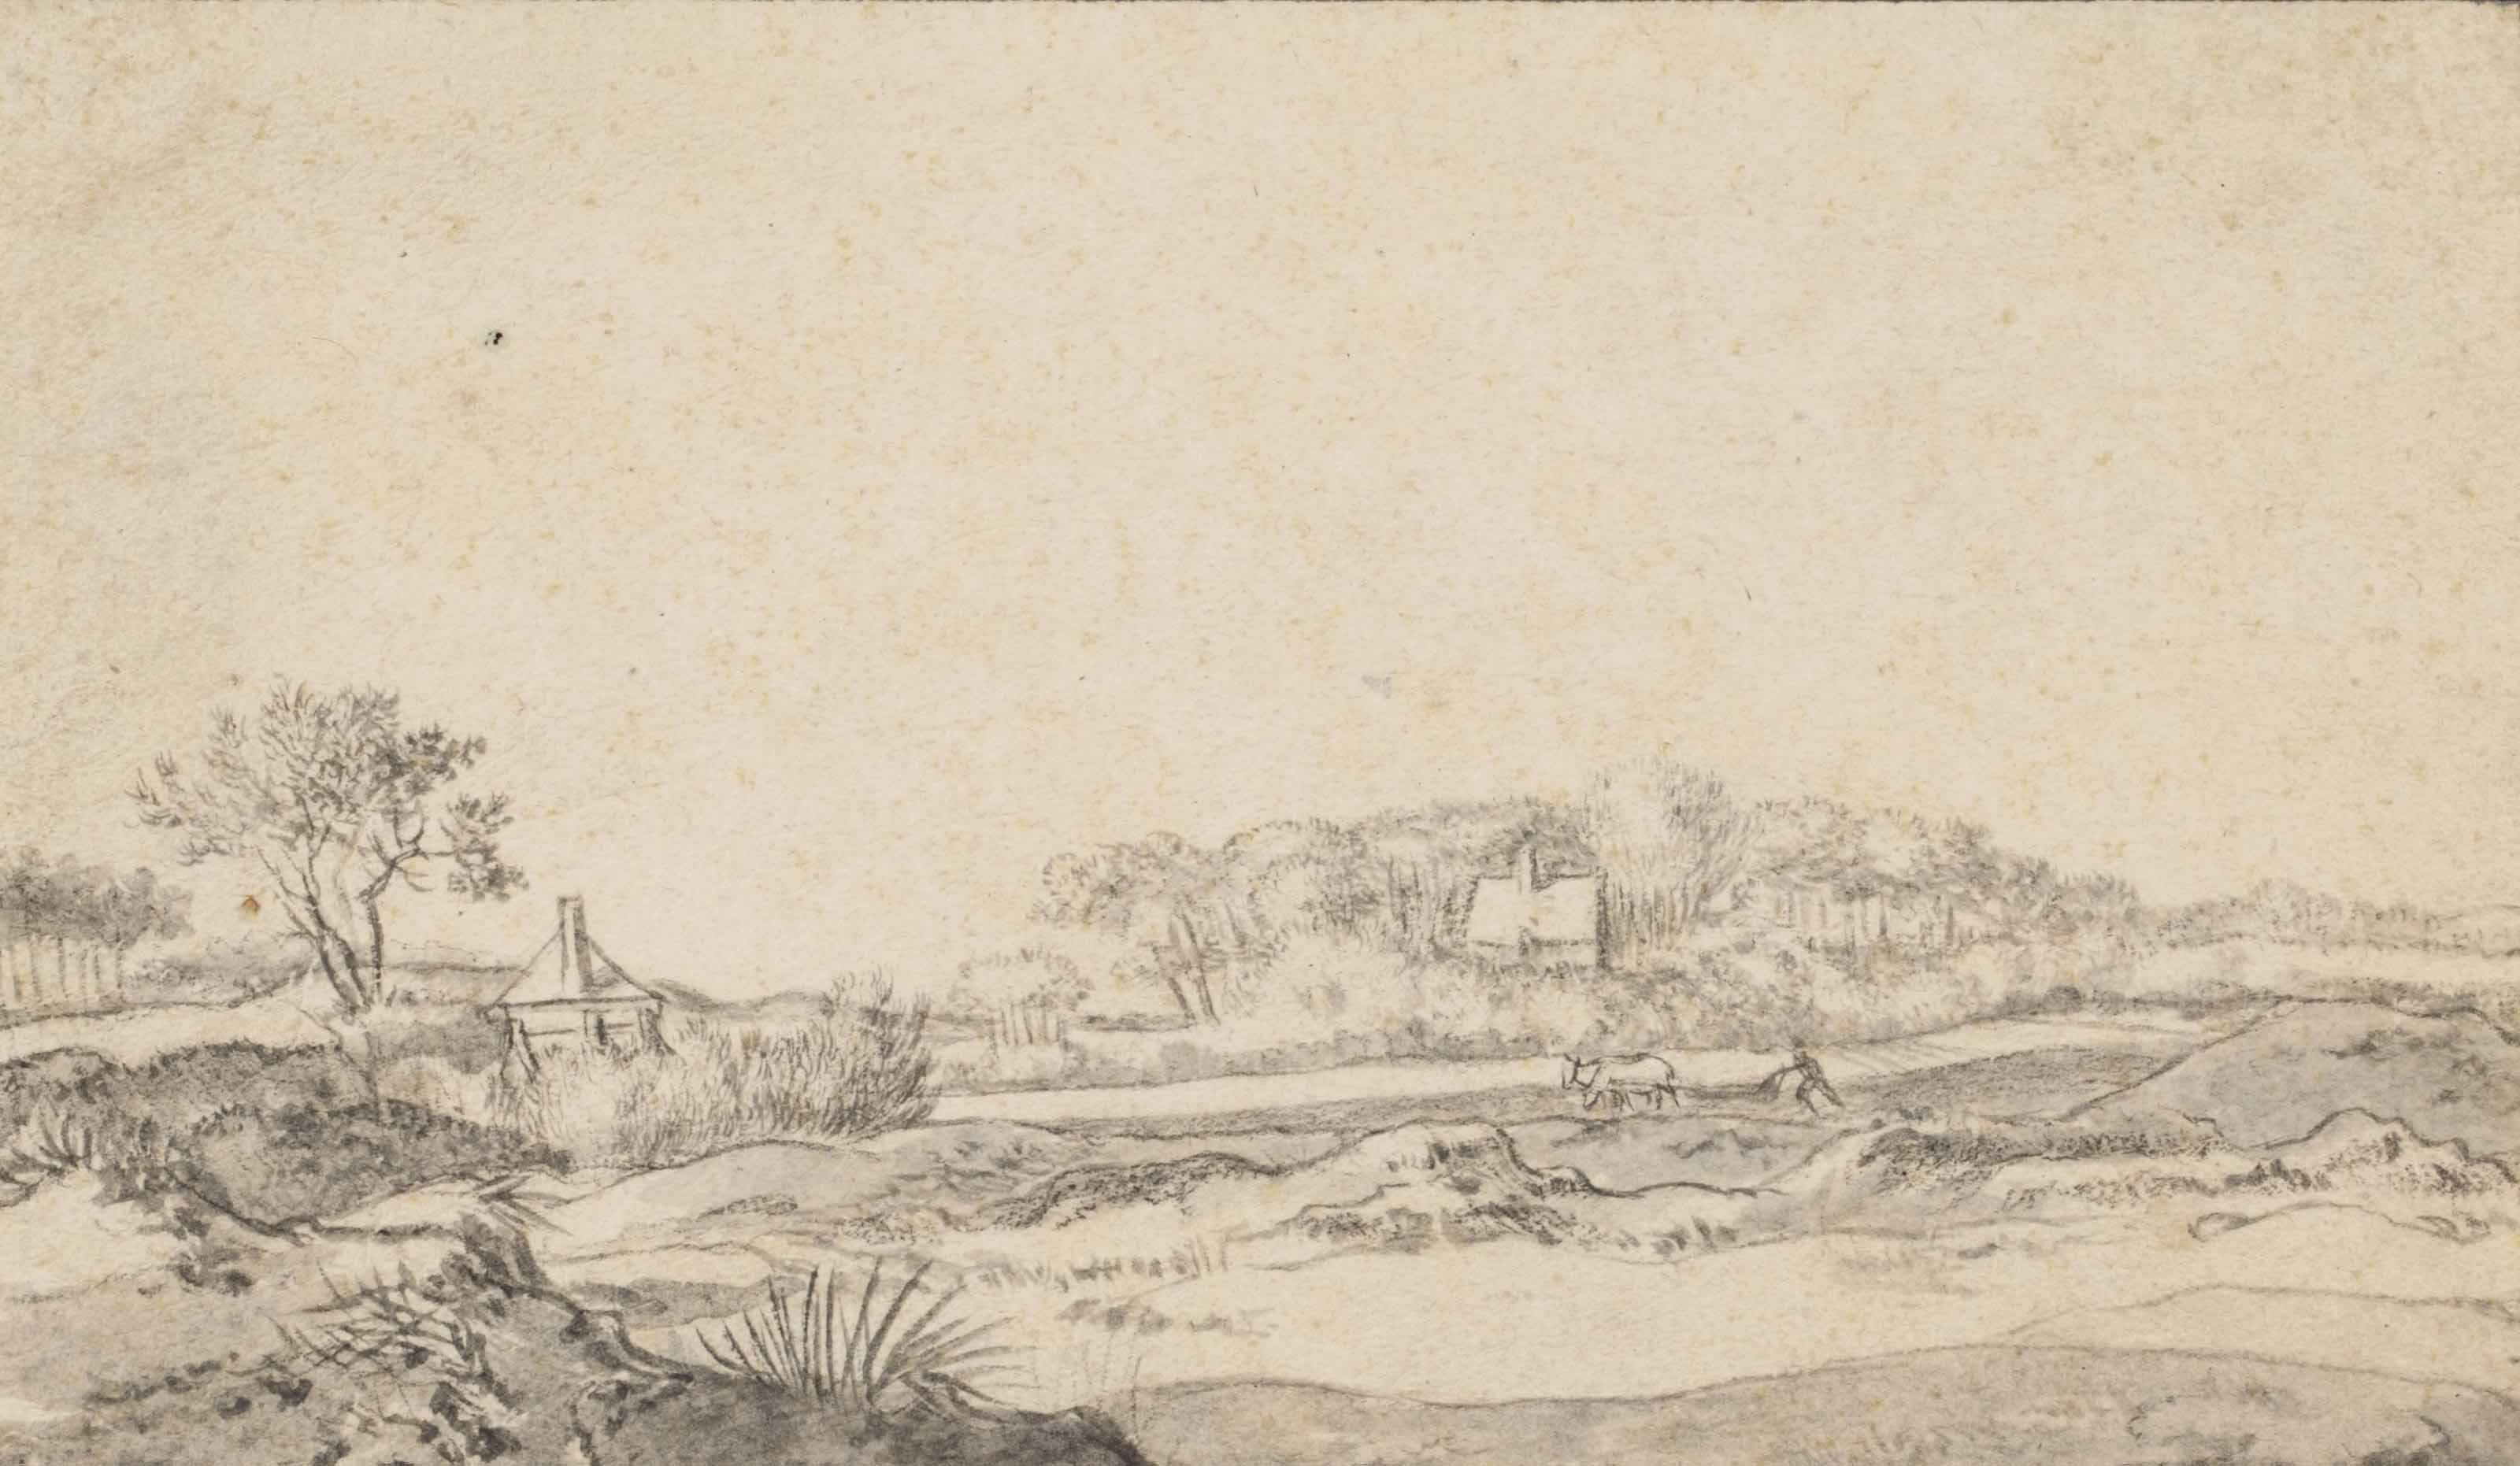 A dune landscape with a farmer ploughing and distant buildings